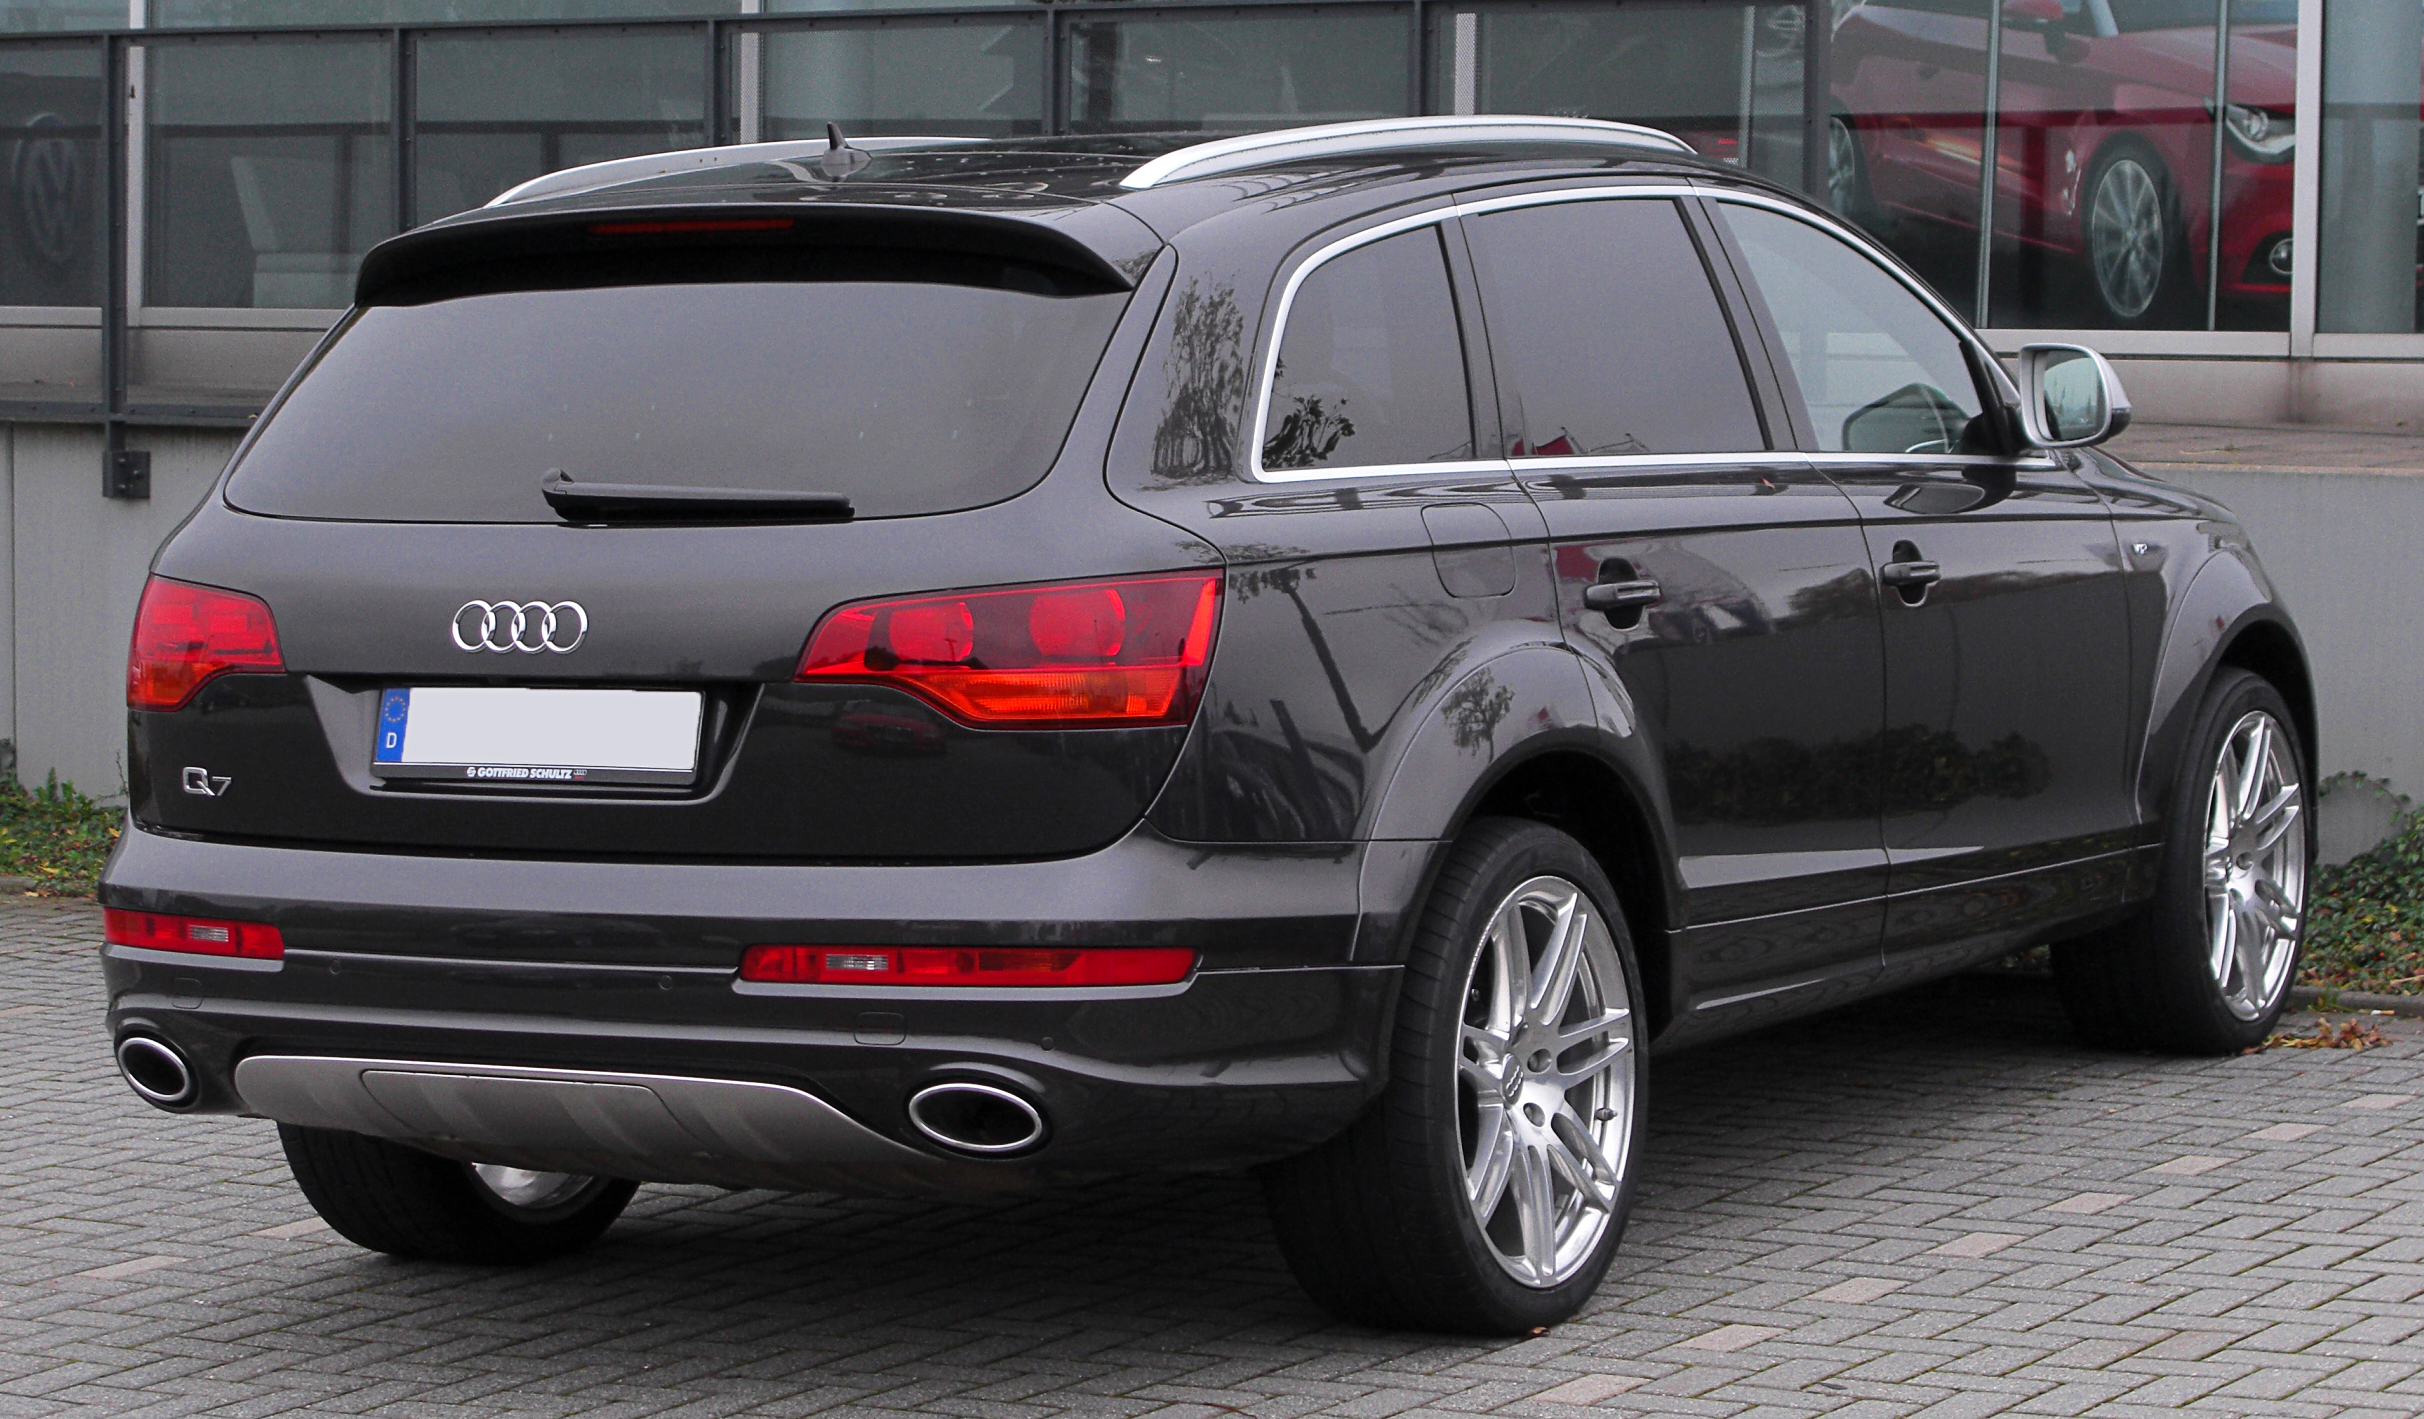 file audi q7 v12 tdi quattro facelift rear. Black Bedroom Furniture Sets. Home Design Ideas